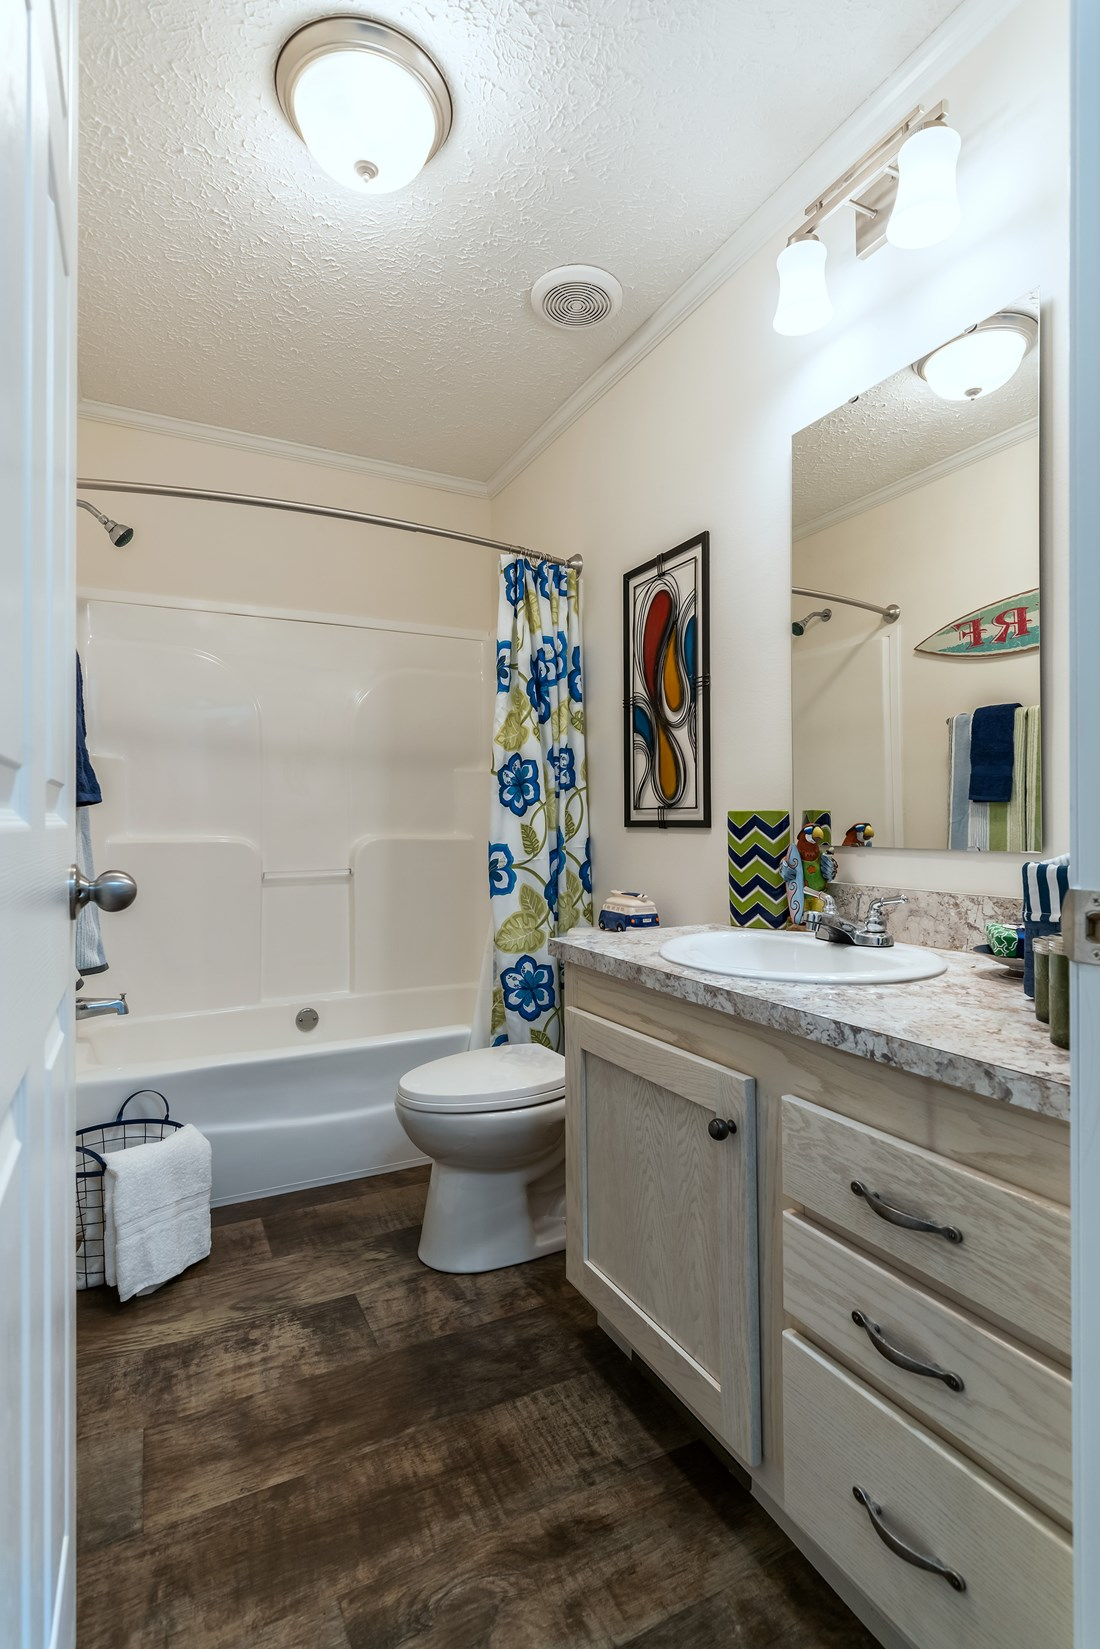 The 2467 HERITAGE Guest Bathroom. This Modular Home features 3 bedrooms and 2 baths.